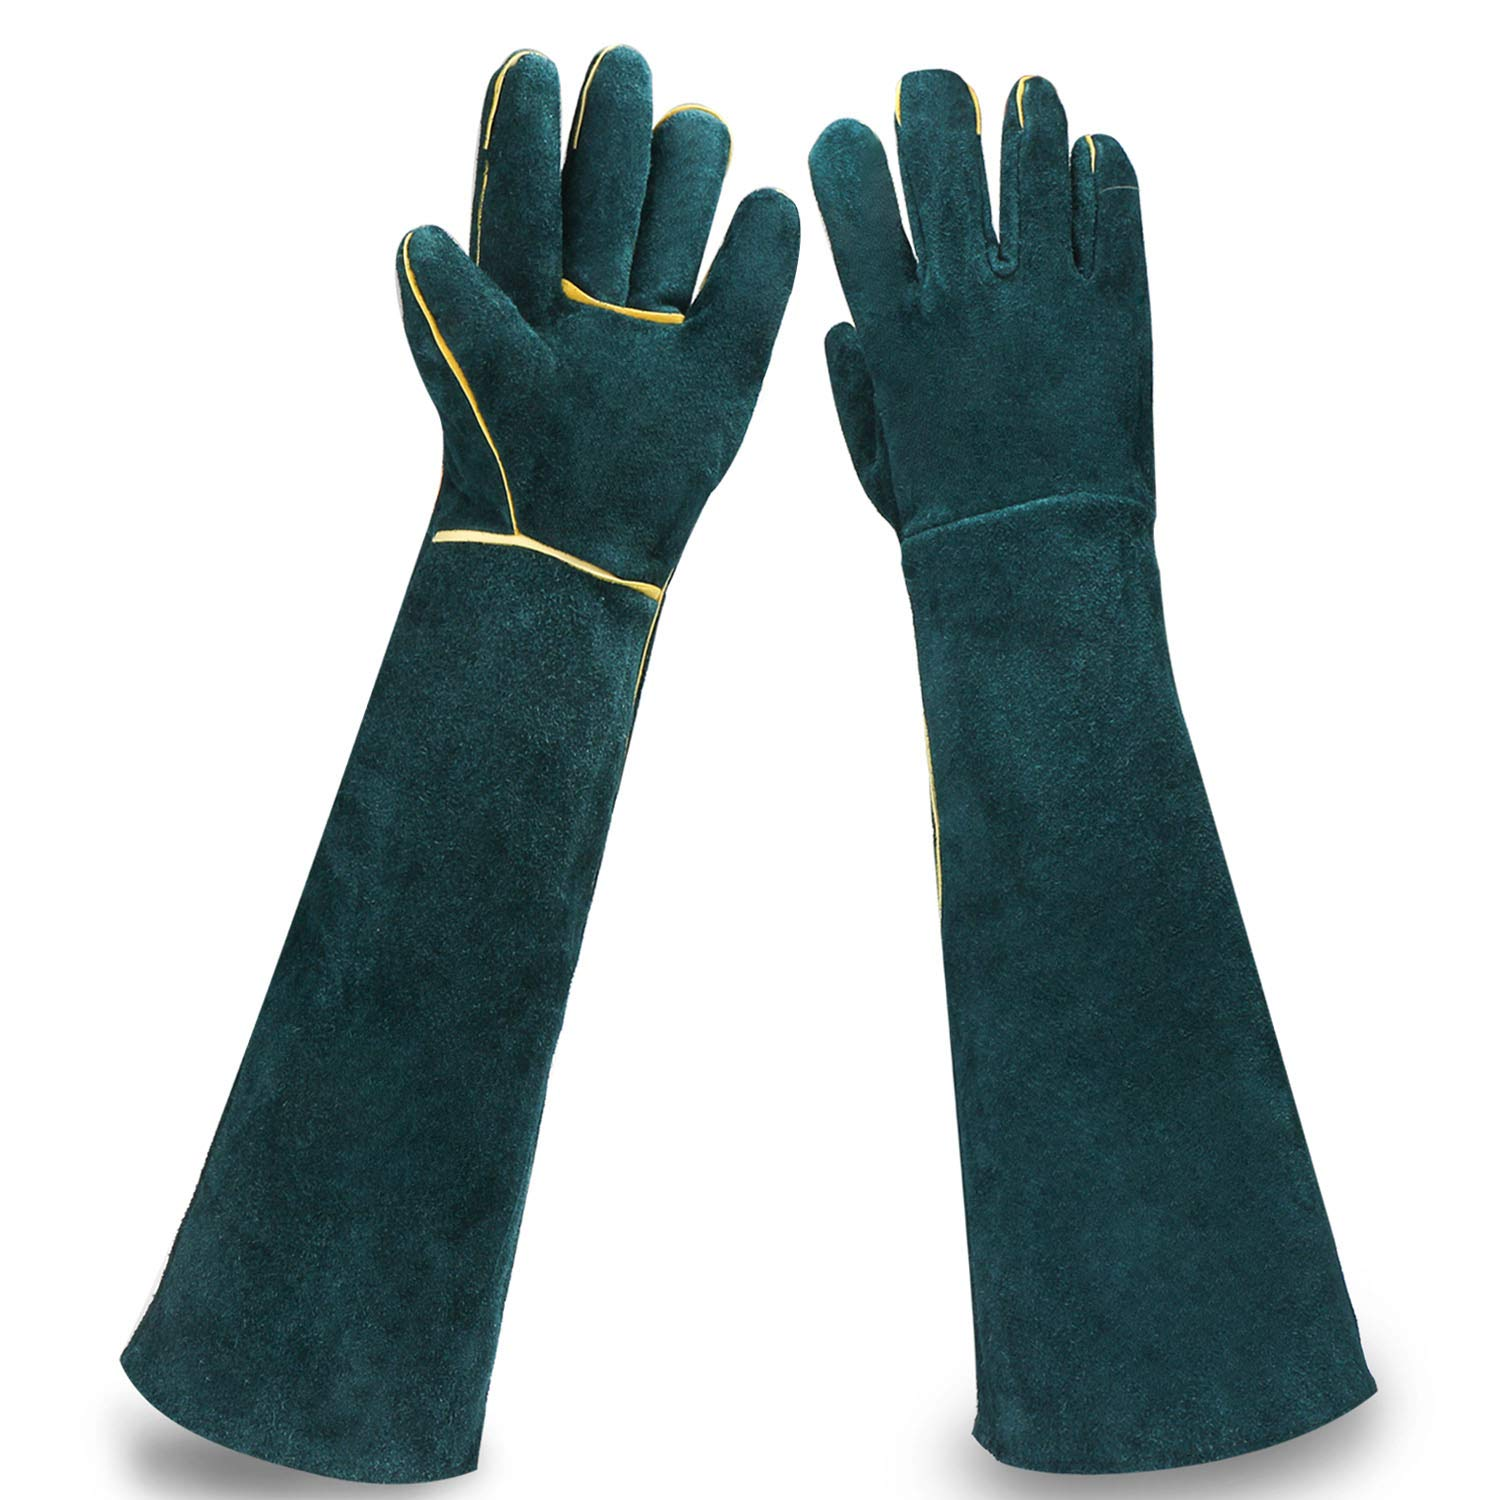 Animal Protection Gloves, EnPoint Reptile Handling Glove, Strengthened Cowhide Leather Anti Bite/Scratch Long Resistant Bathing Training Gloves for Pet Dog Cat Bird Snake Parrot Lizard Wild Animals